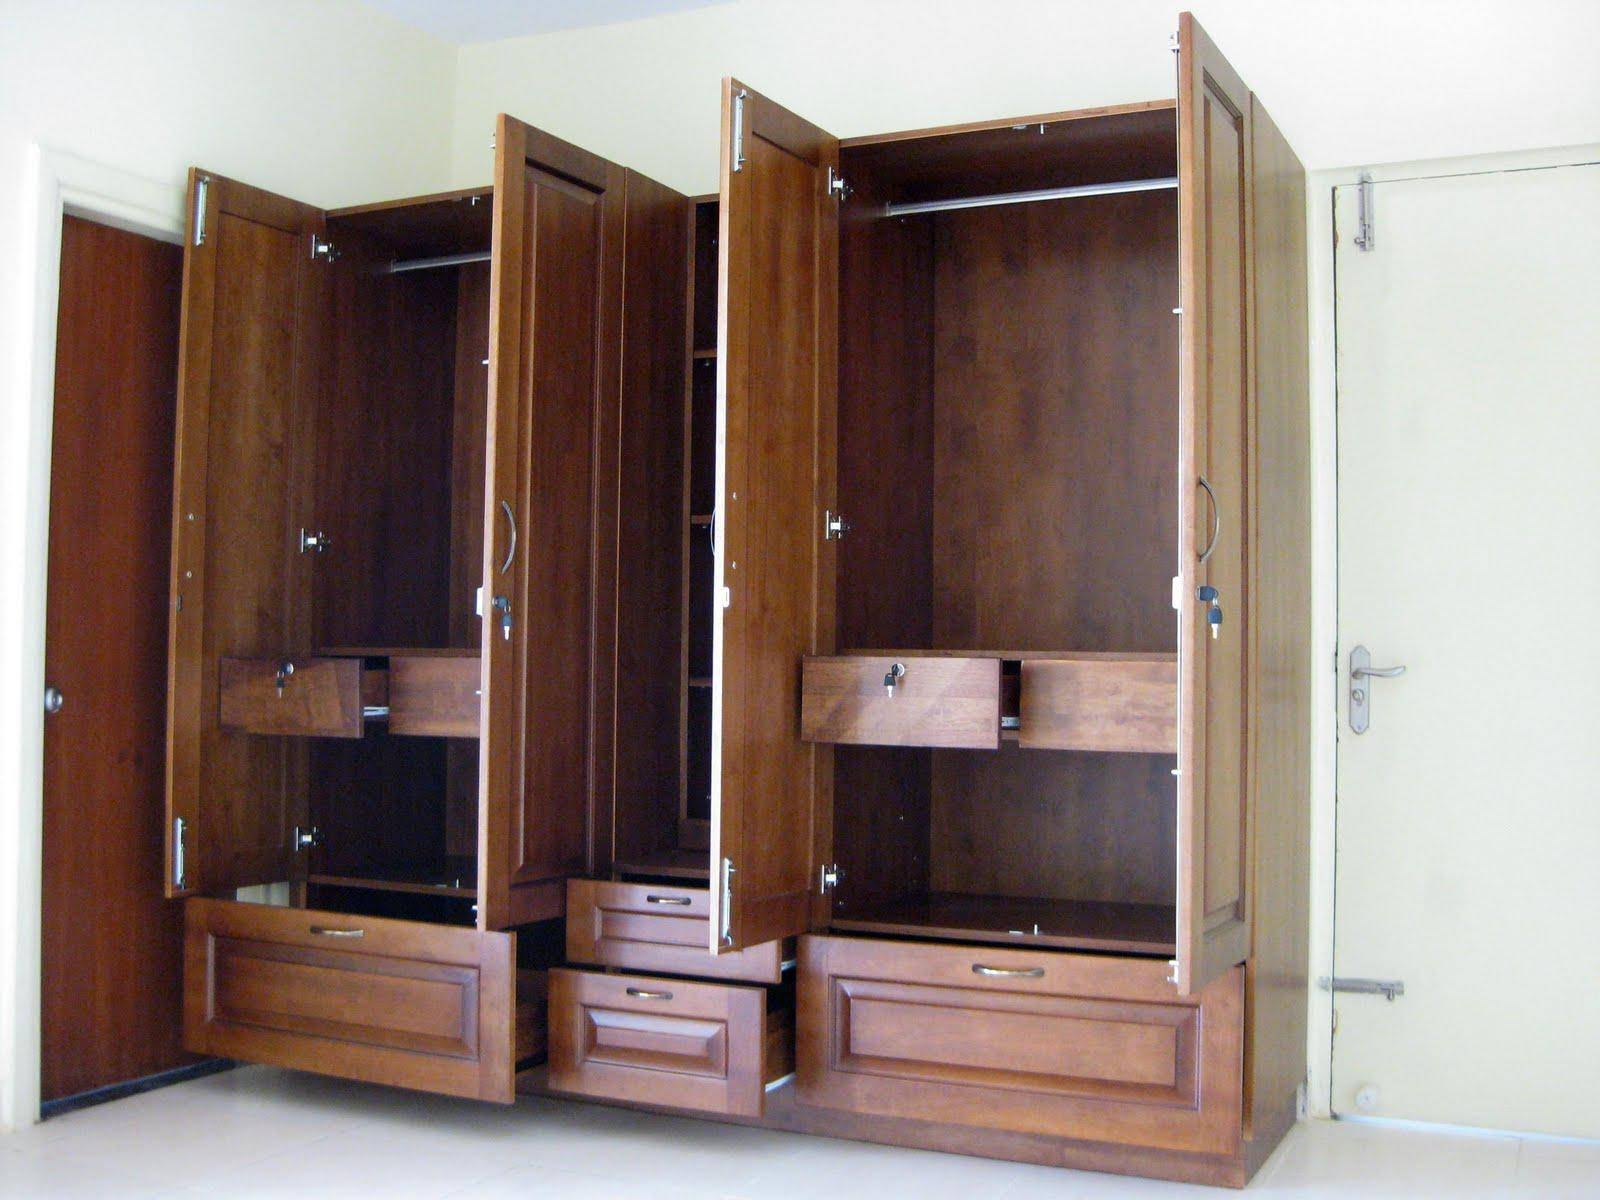 Furniture: Fancy Wardrobe Armoire For Wardrobe Organizer Idea in Wardrobe With Shelves And Drawers (Image 13 of 30)